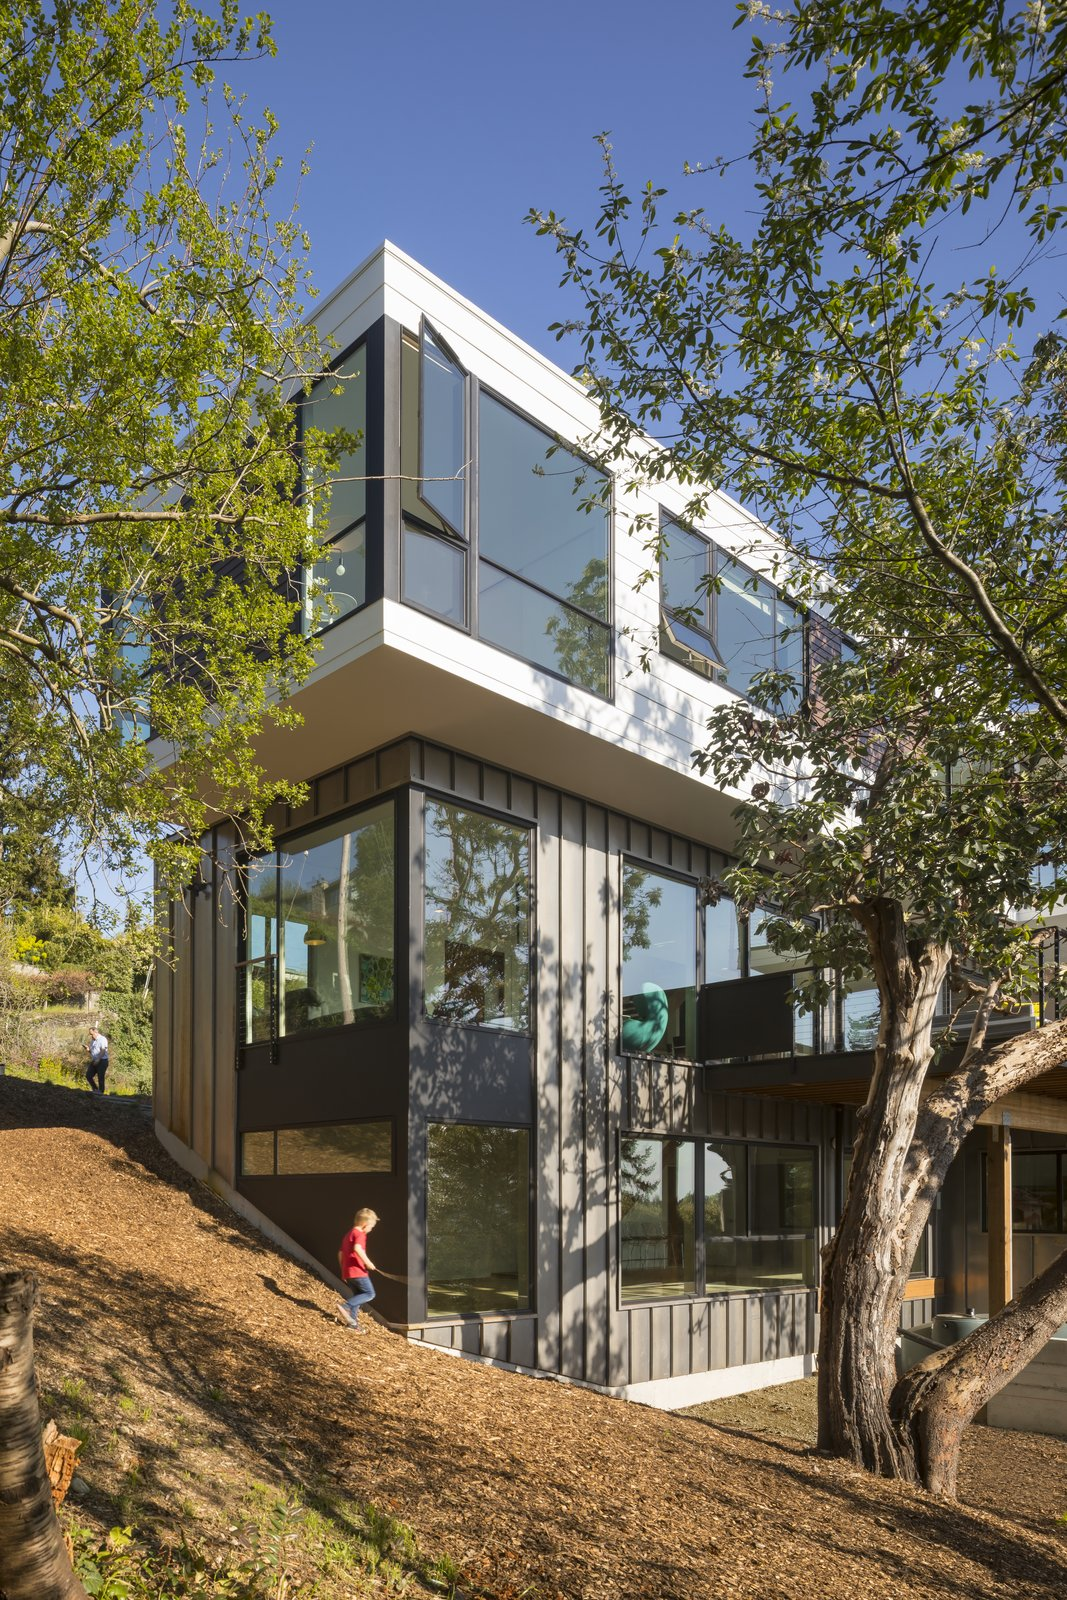 Exterior, Flat, Tile, Wood, Metal, House, Concrete, and Prefab The house wraps itself around the historic tree while allowing the natural landscape to do the same around itself.  Exterior Prefab Tile Metal Photos from Farwell